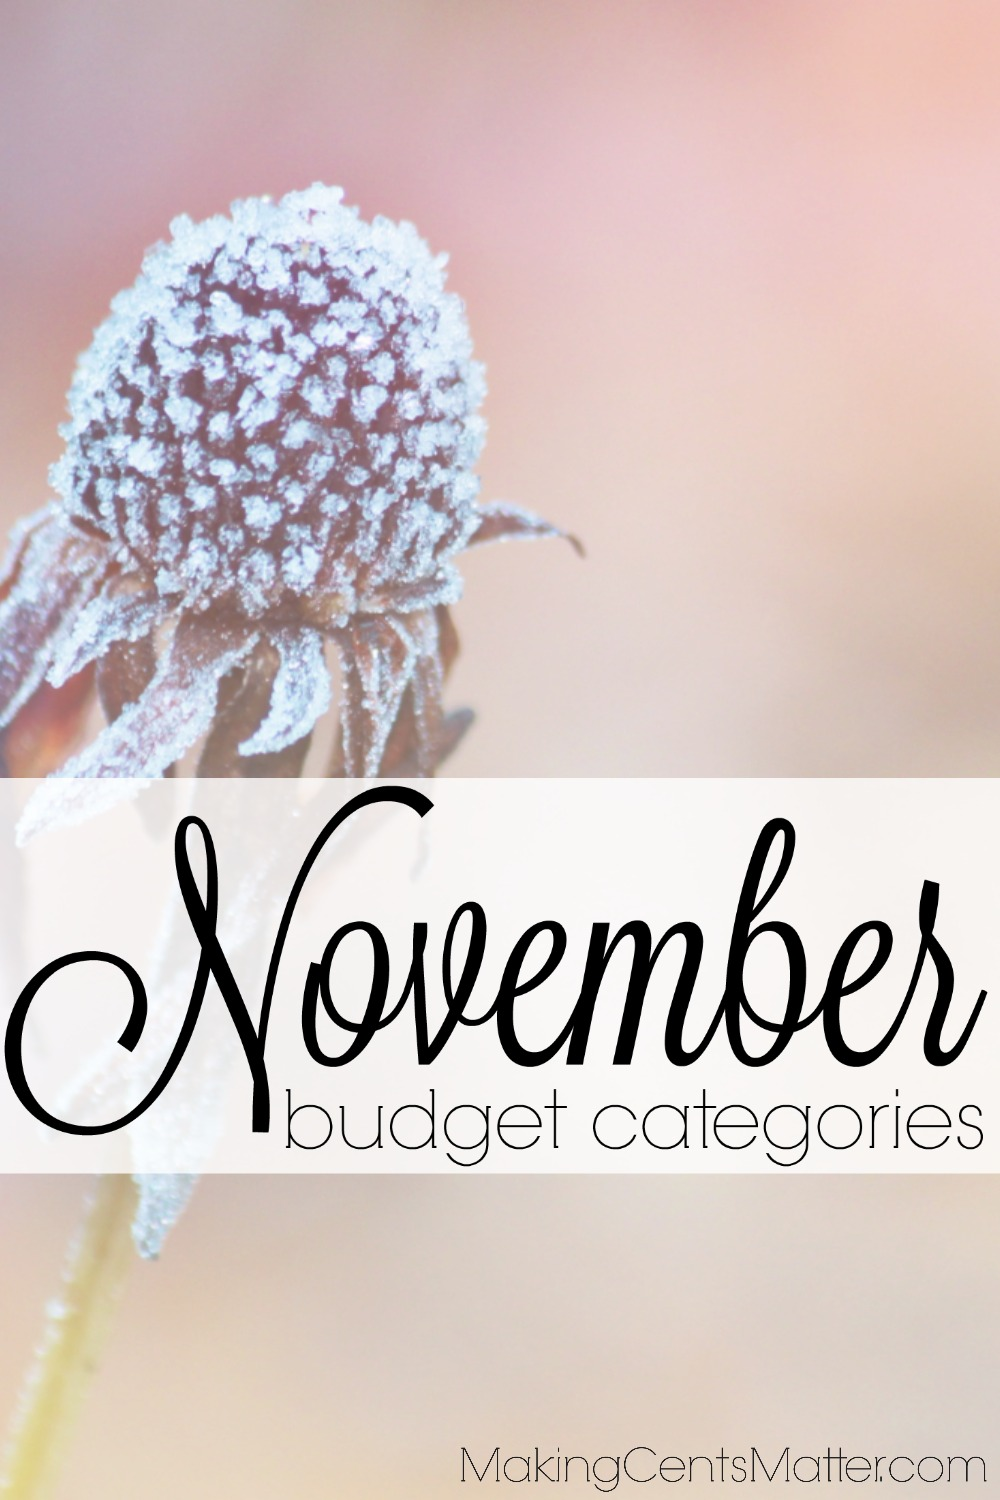 10 categories you forgot about in your November budget.